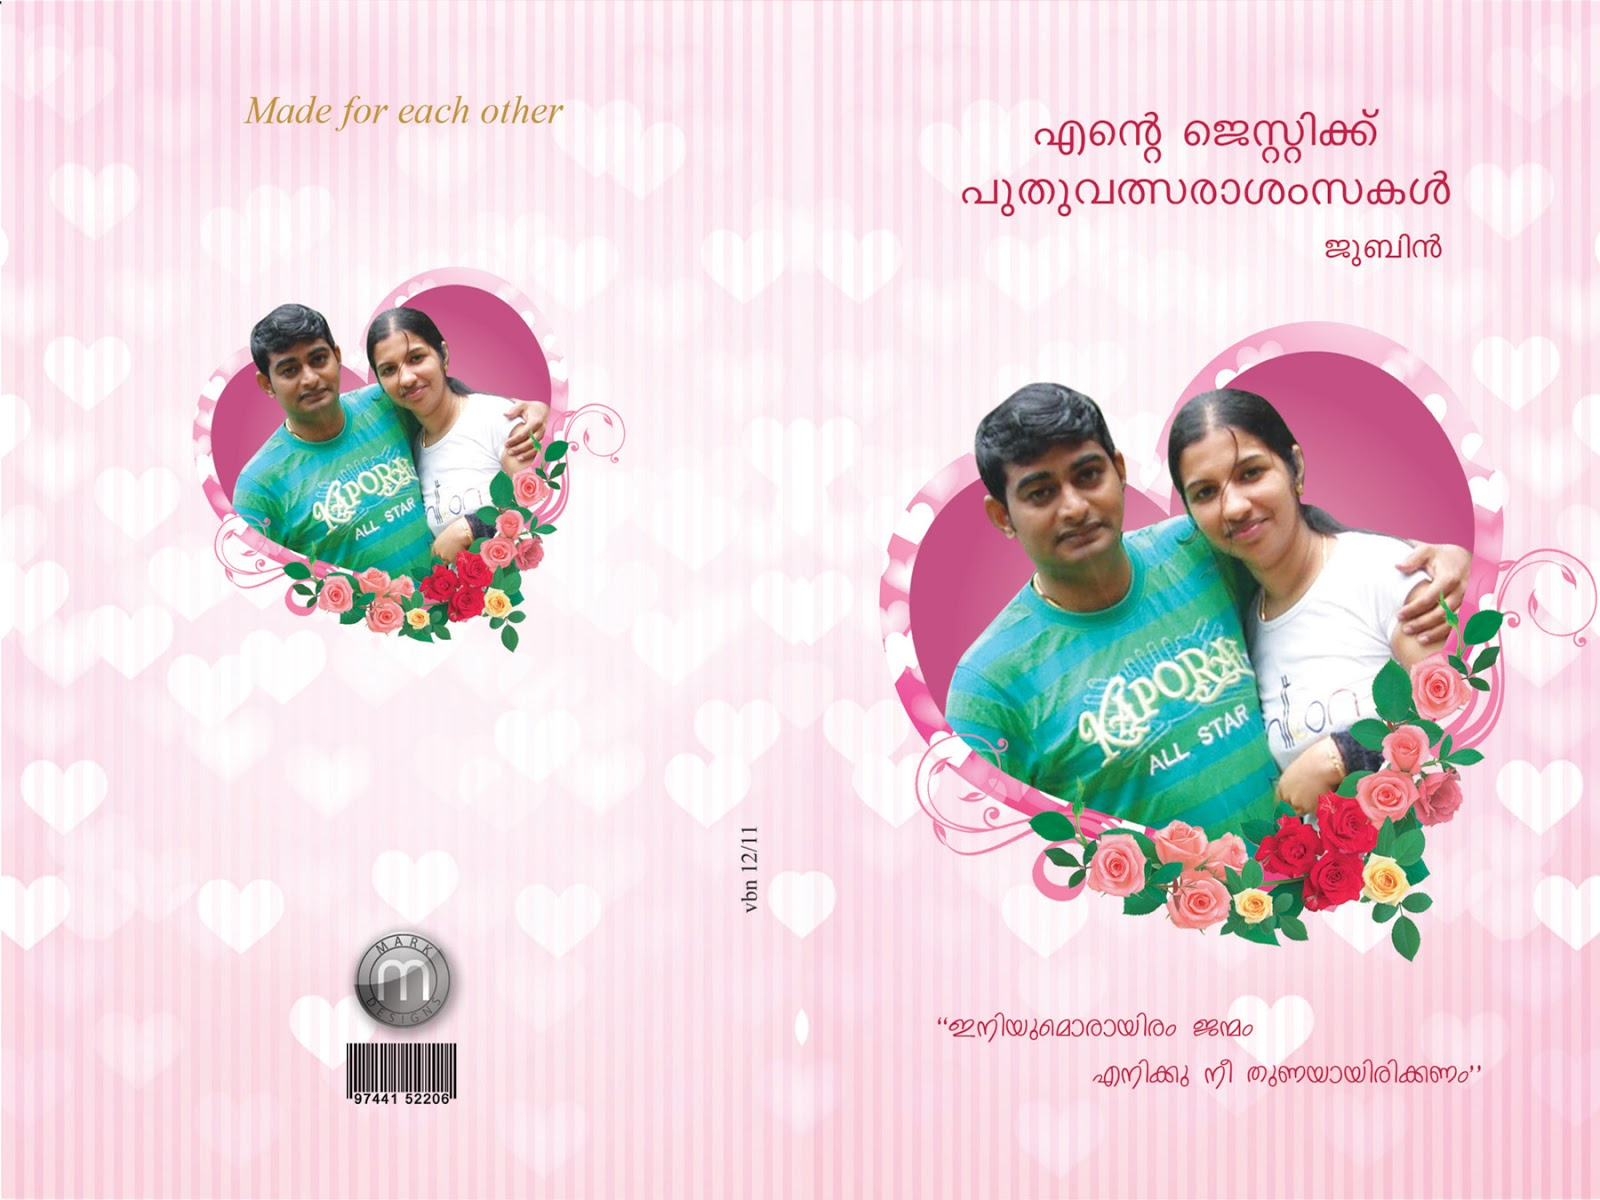 Invitation letter wedding anniversary picture ideas references